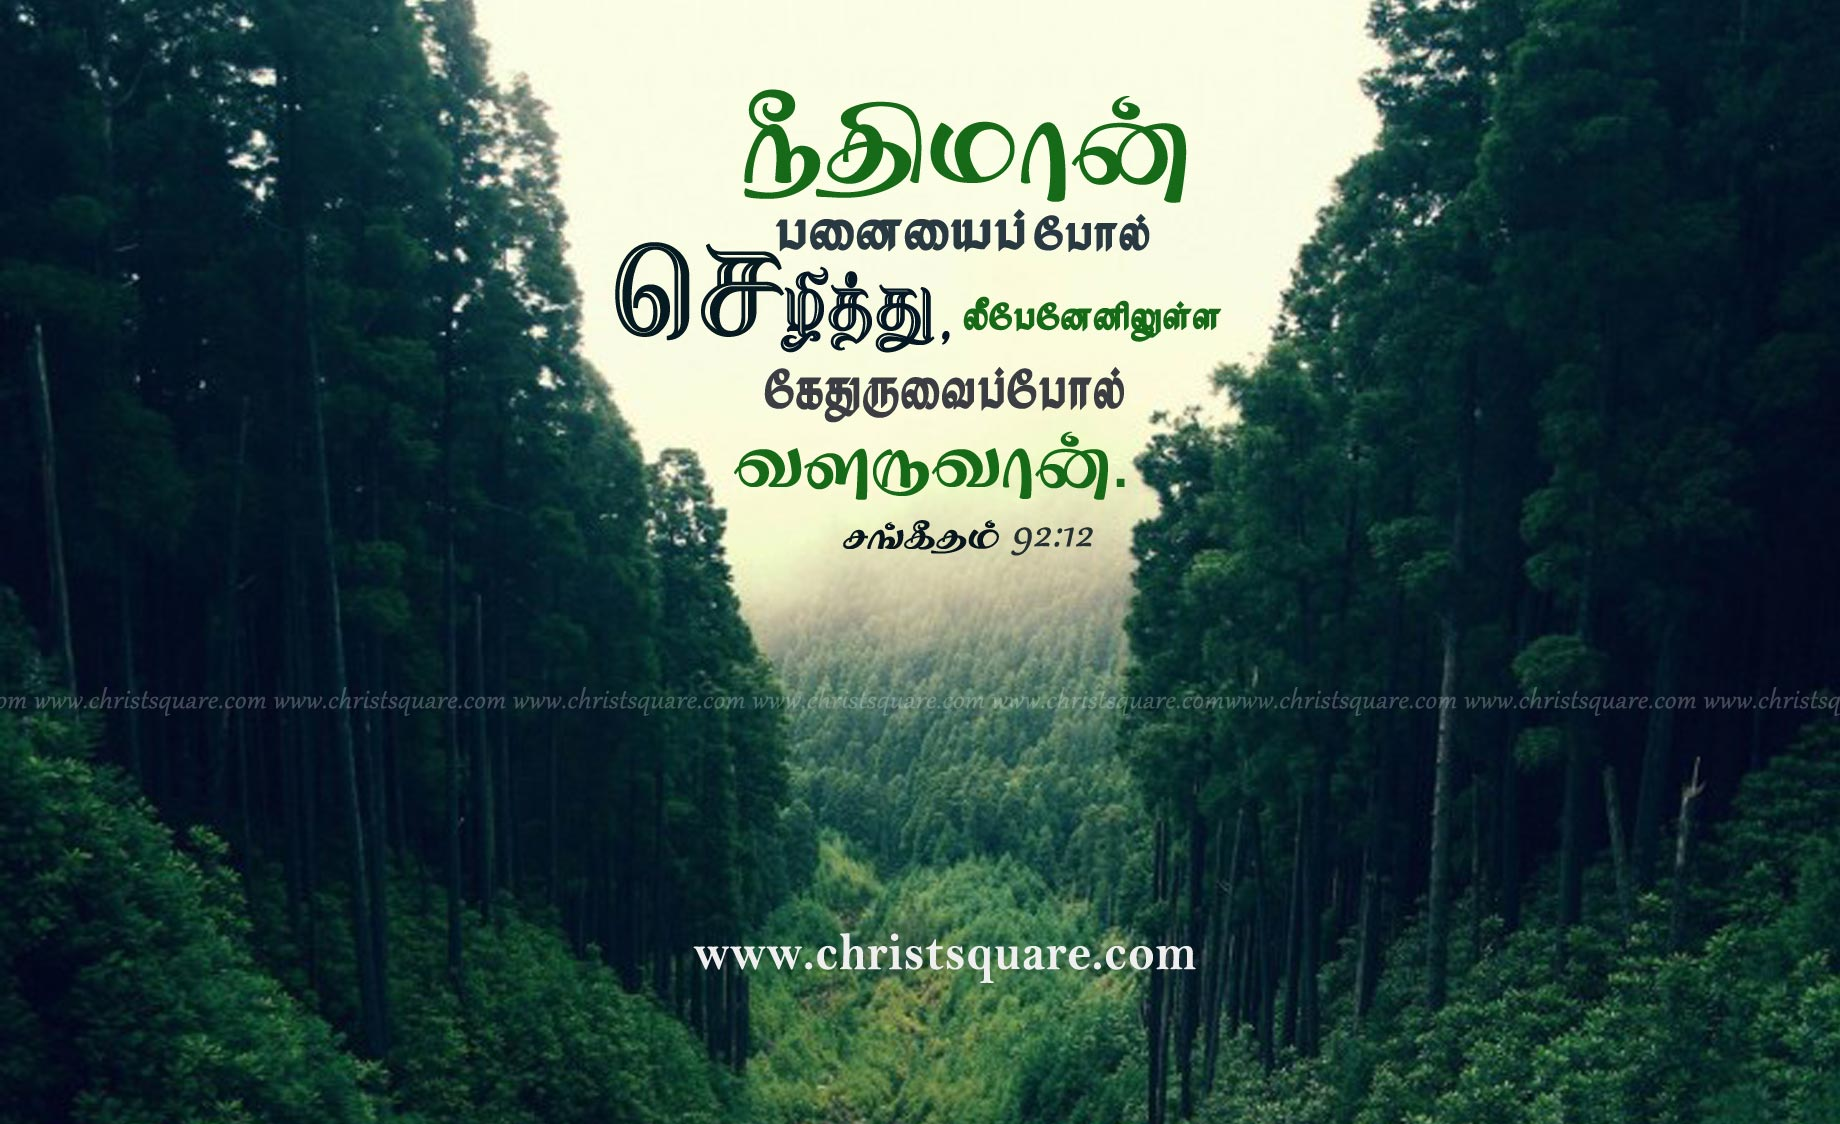 Tamil Mobile Wallpapers